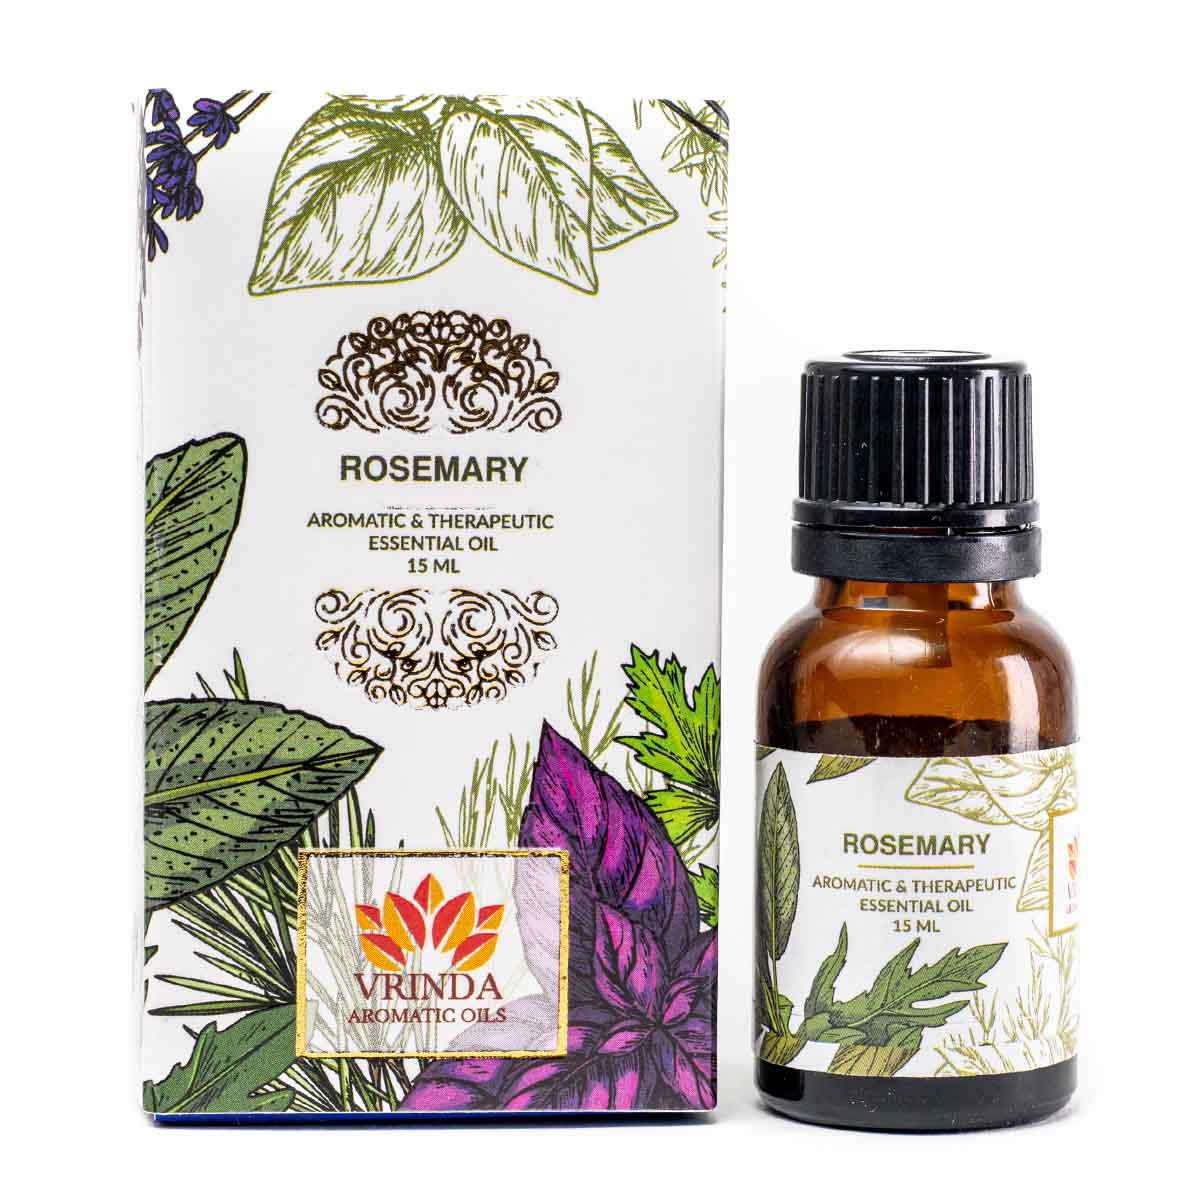 Rosemary Aroma Therapeutic Oil Natural Rosemary Therapeutic Oil